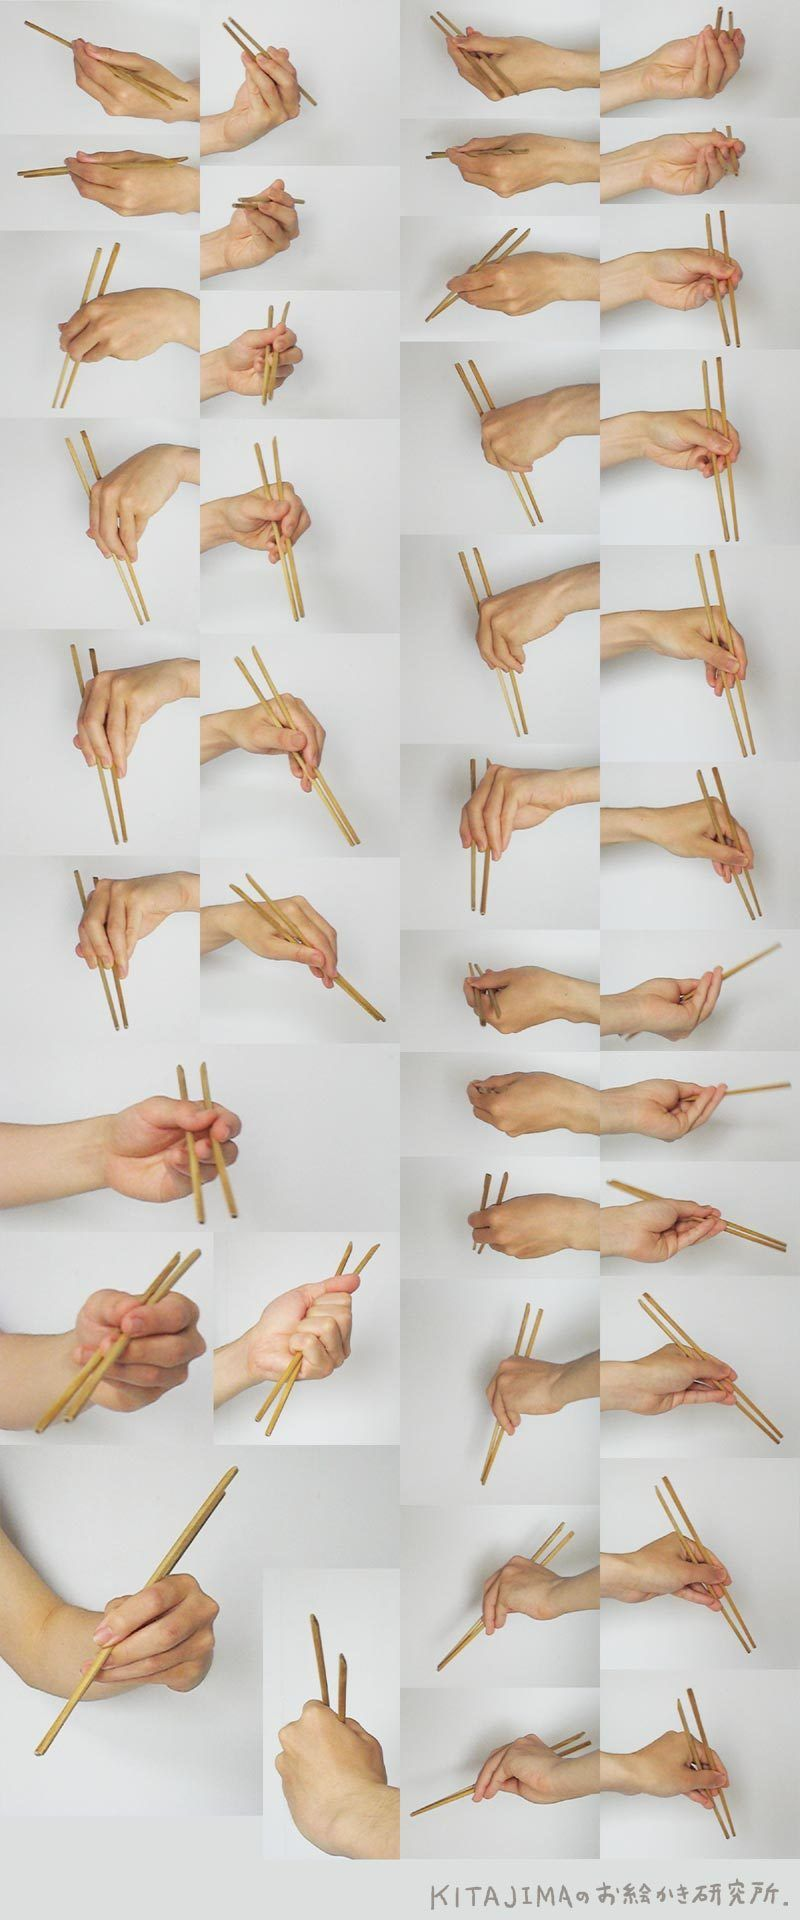 Use chopsticks with left hand | Hands and Arms | Pinterest ...